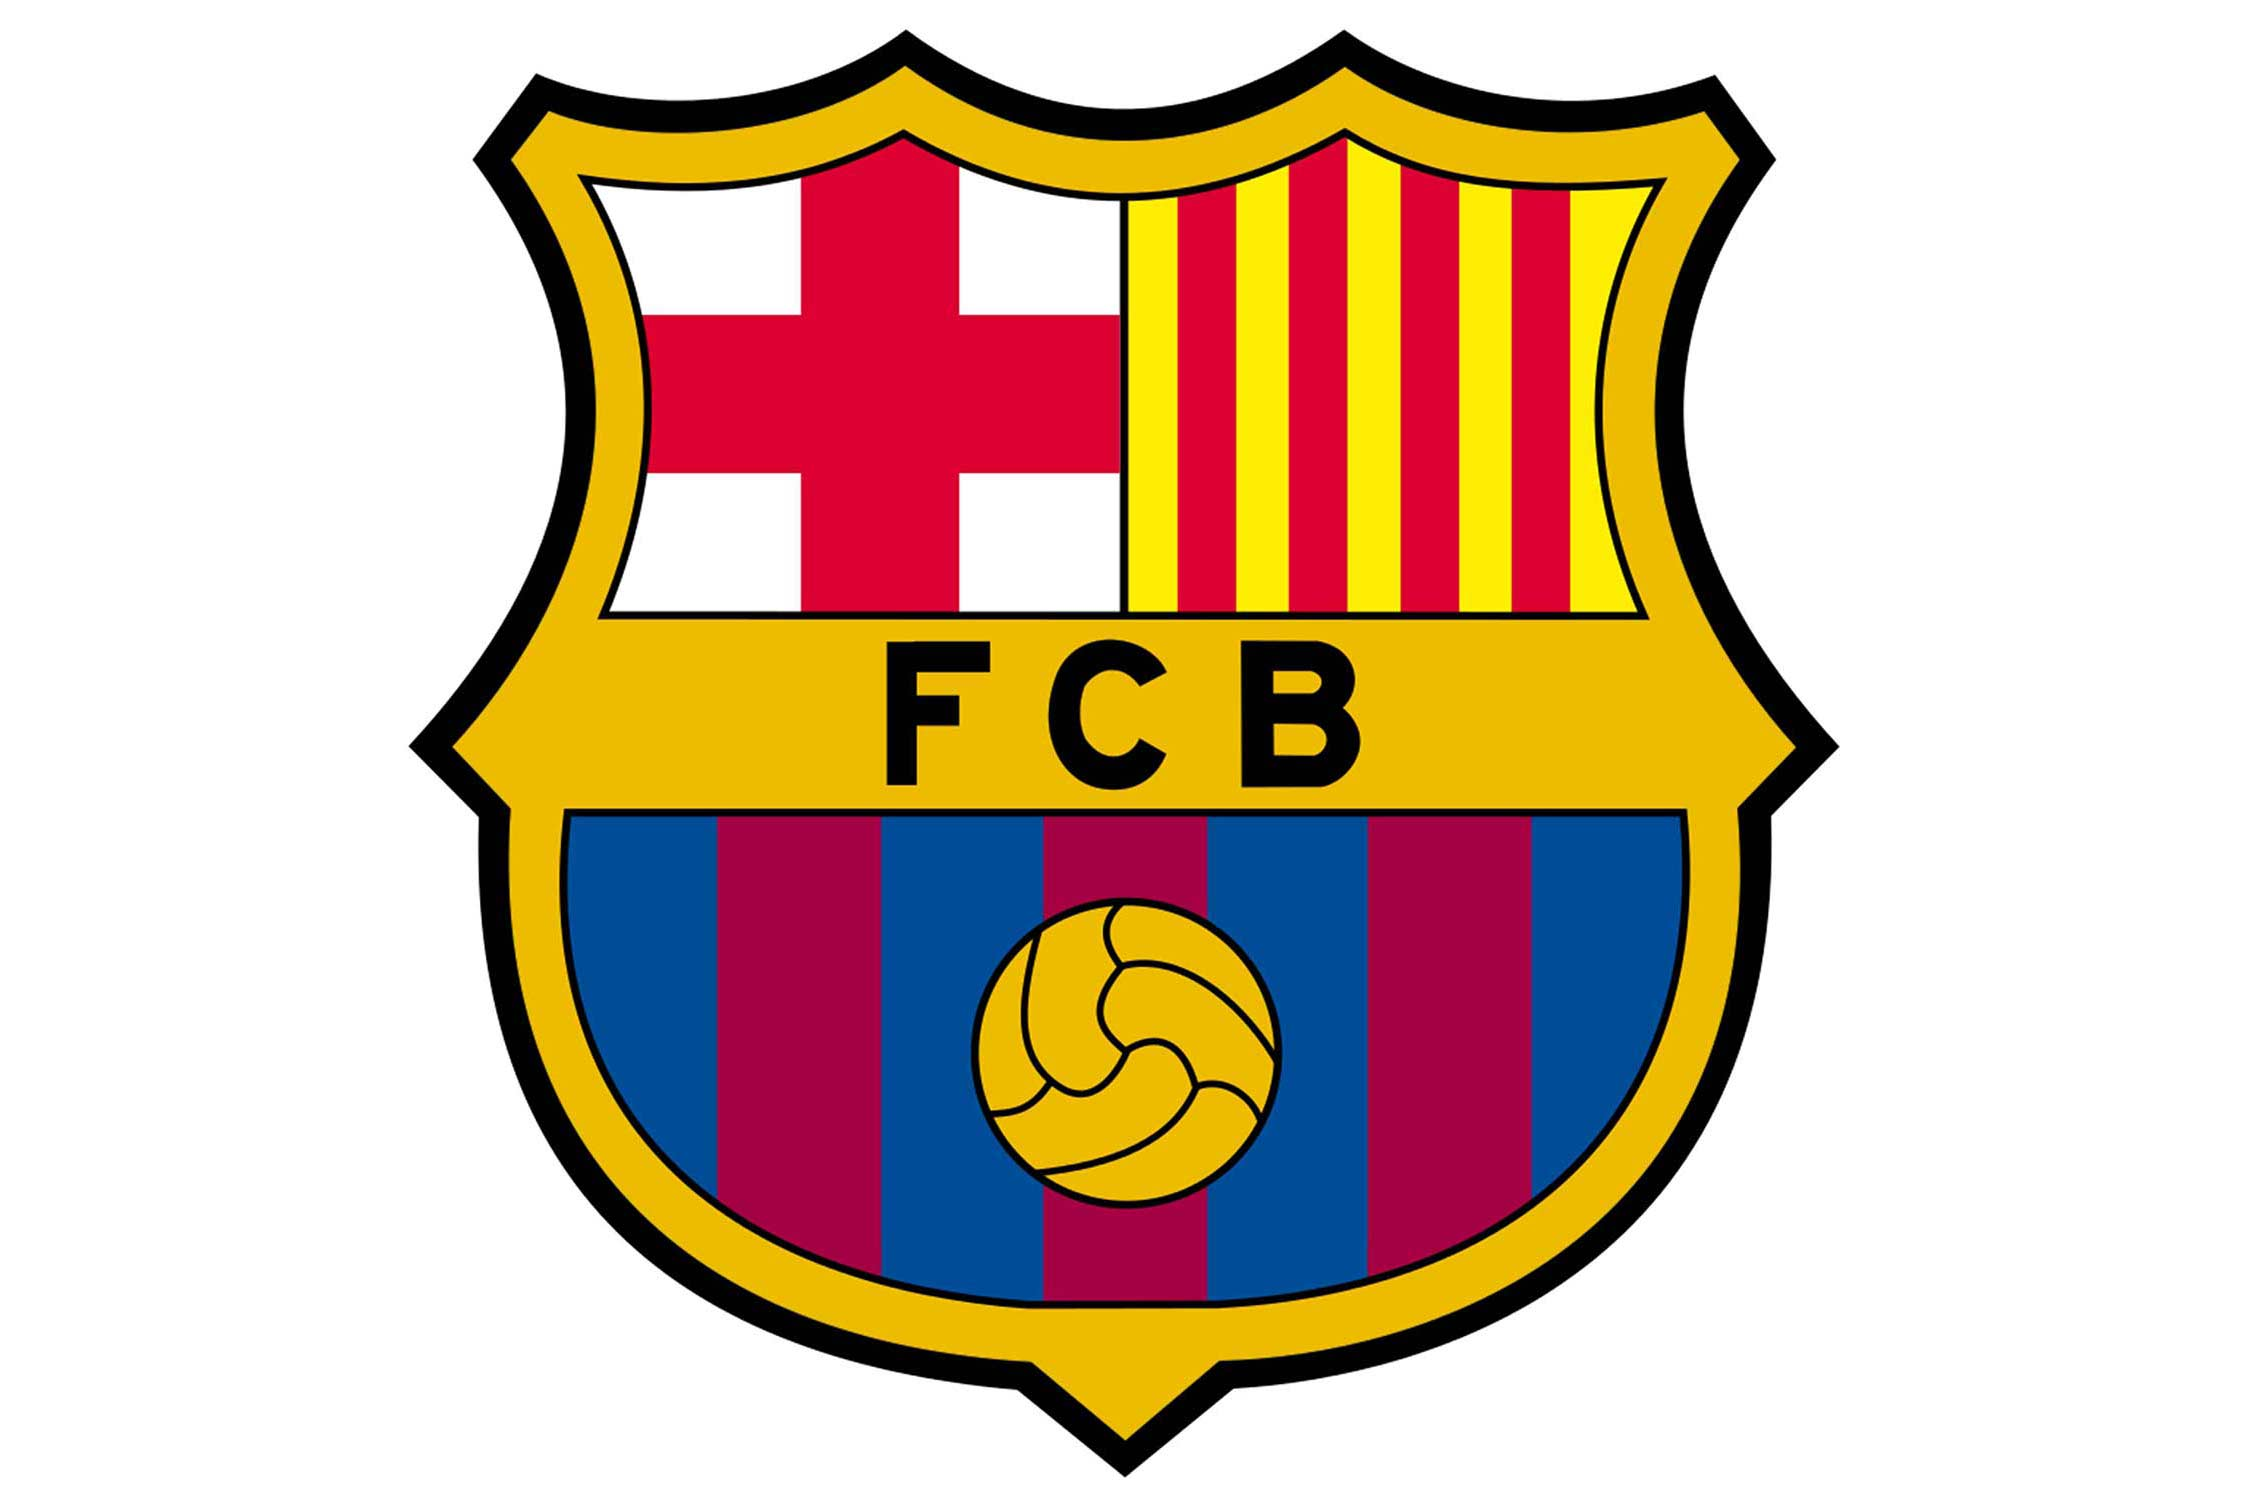 As a club, Barcelona is often regarded as a symbol of Catalonian nationalism. As such, the red and yellow stripes of the Catalonia flag are featured in the upper right side of the crest. On the upper left is the cross of St. George, who is seen as the patron saint of the city of Barcelona. The St. George's cross is also commonly known as the flag of England.